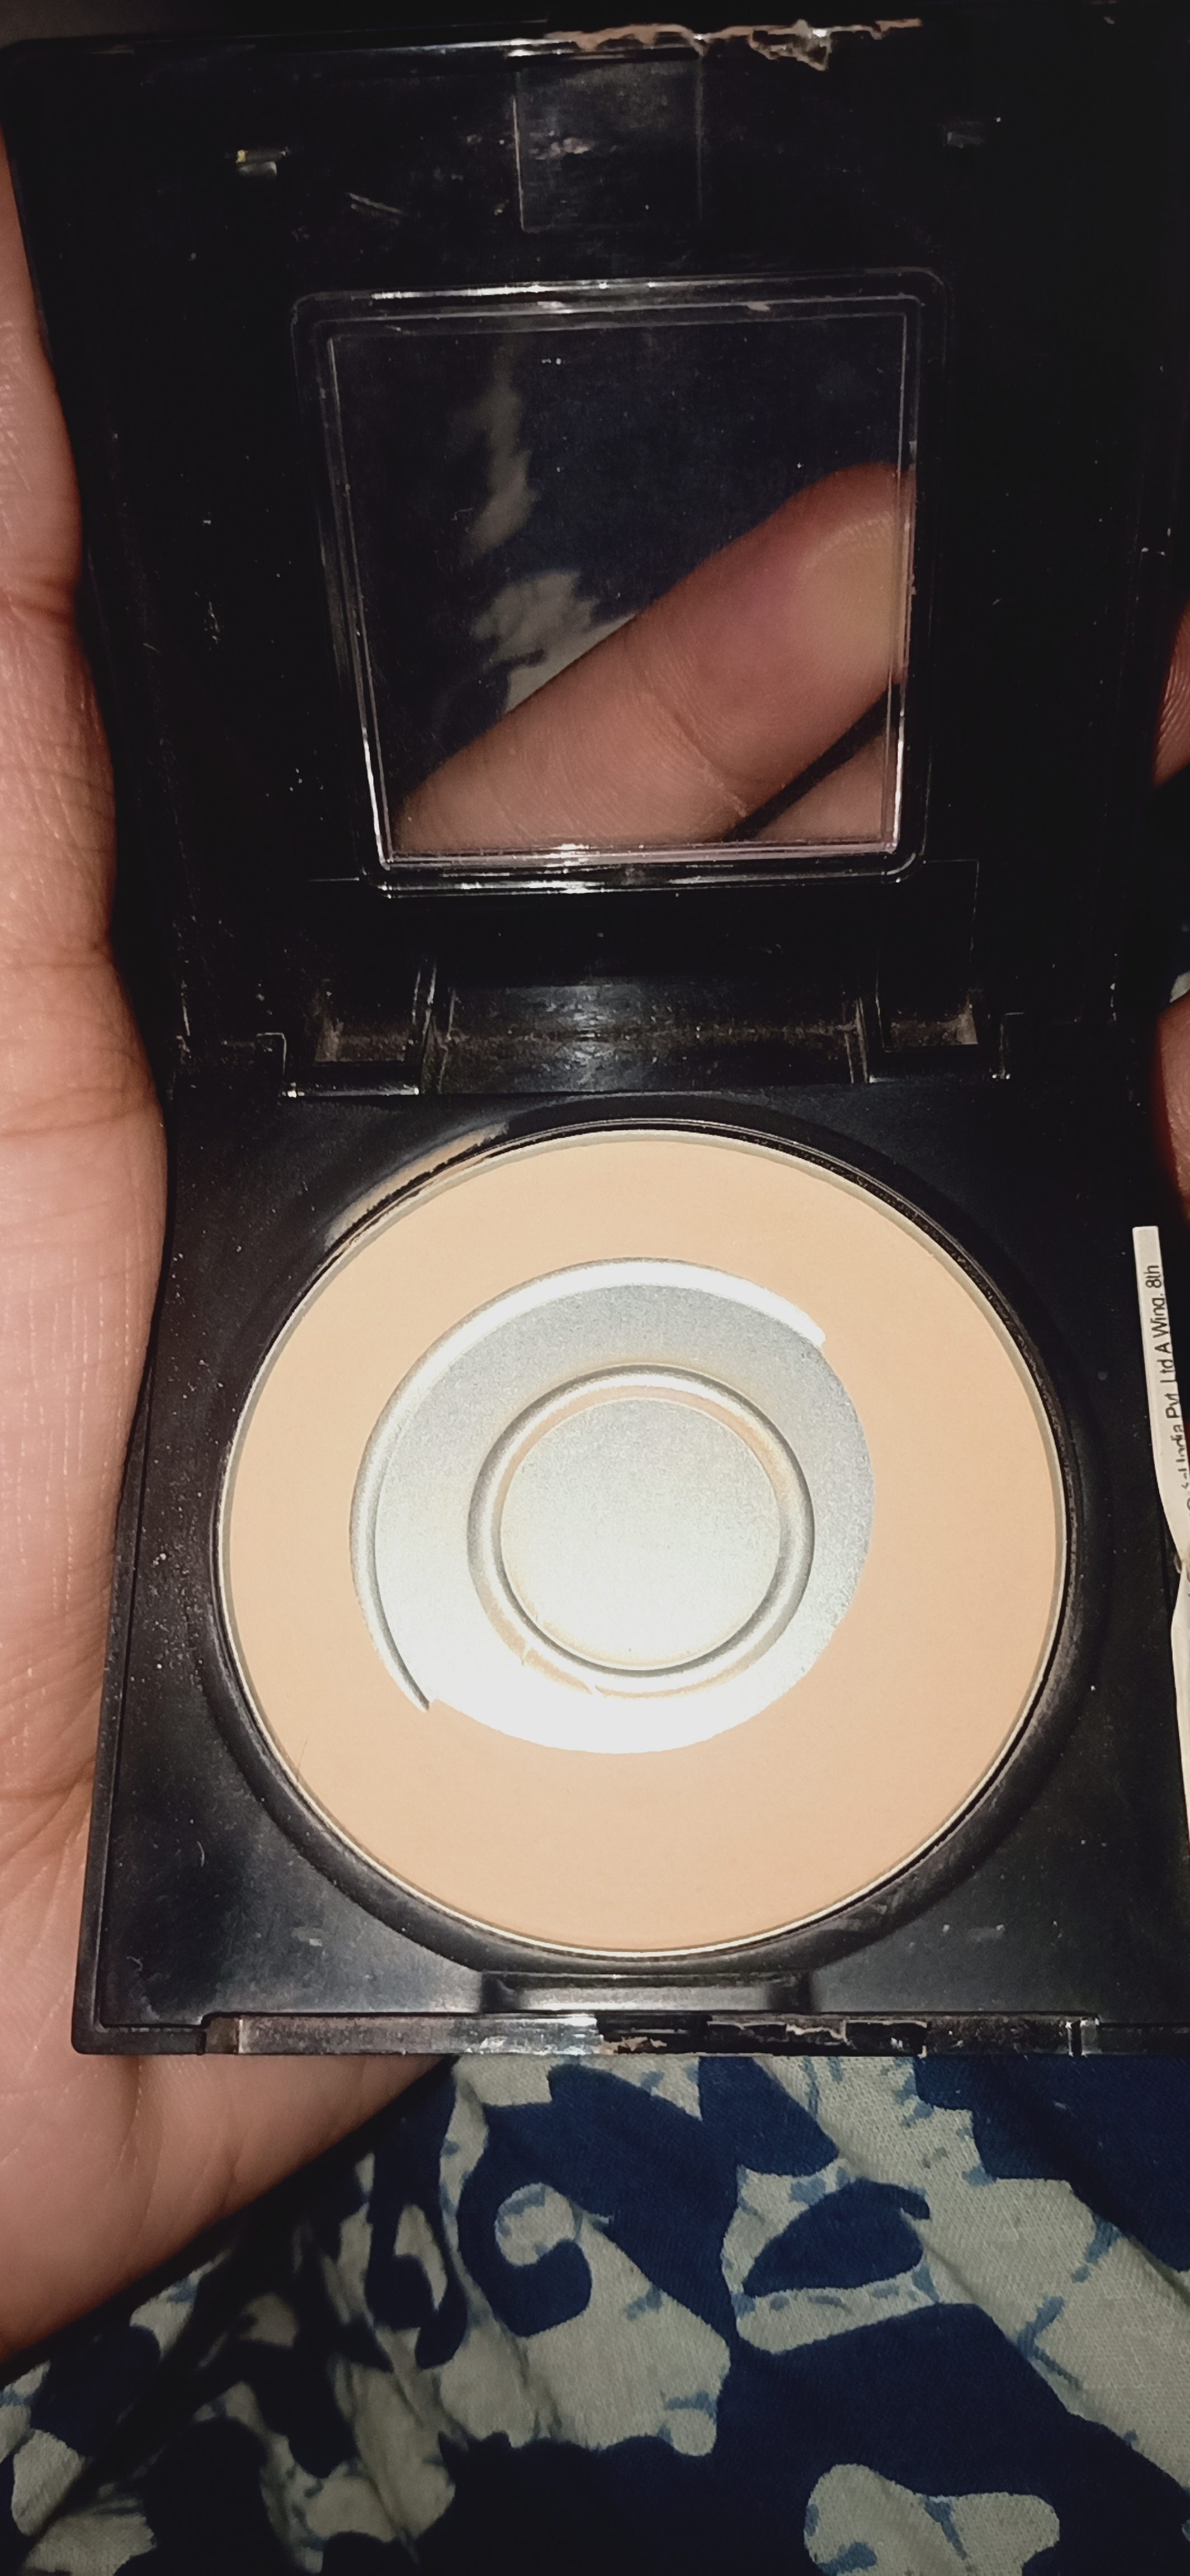 Maybelline Fit Me Matte And Poreless Powder-My favourite product.-By arsh-2